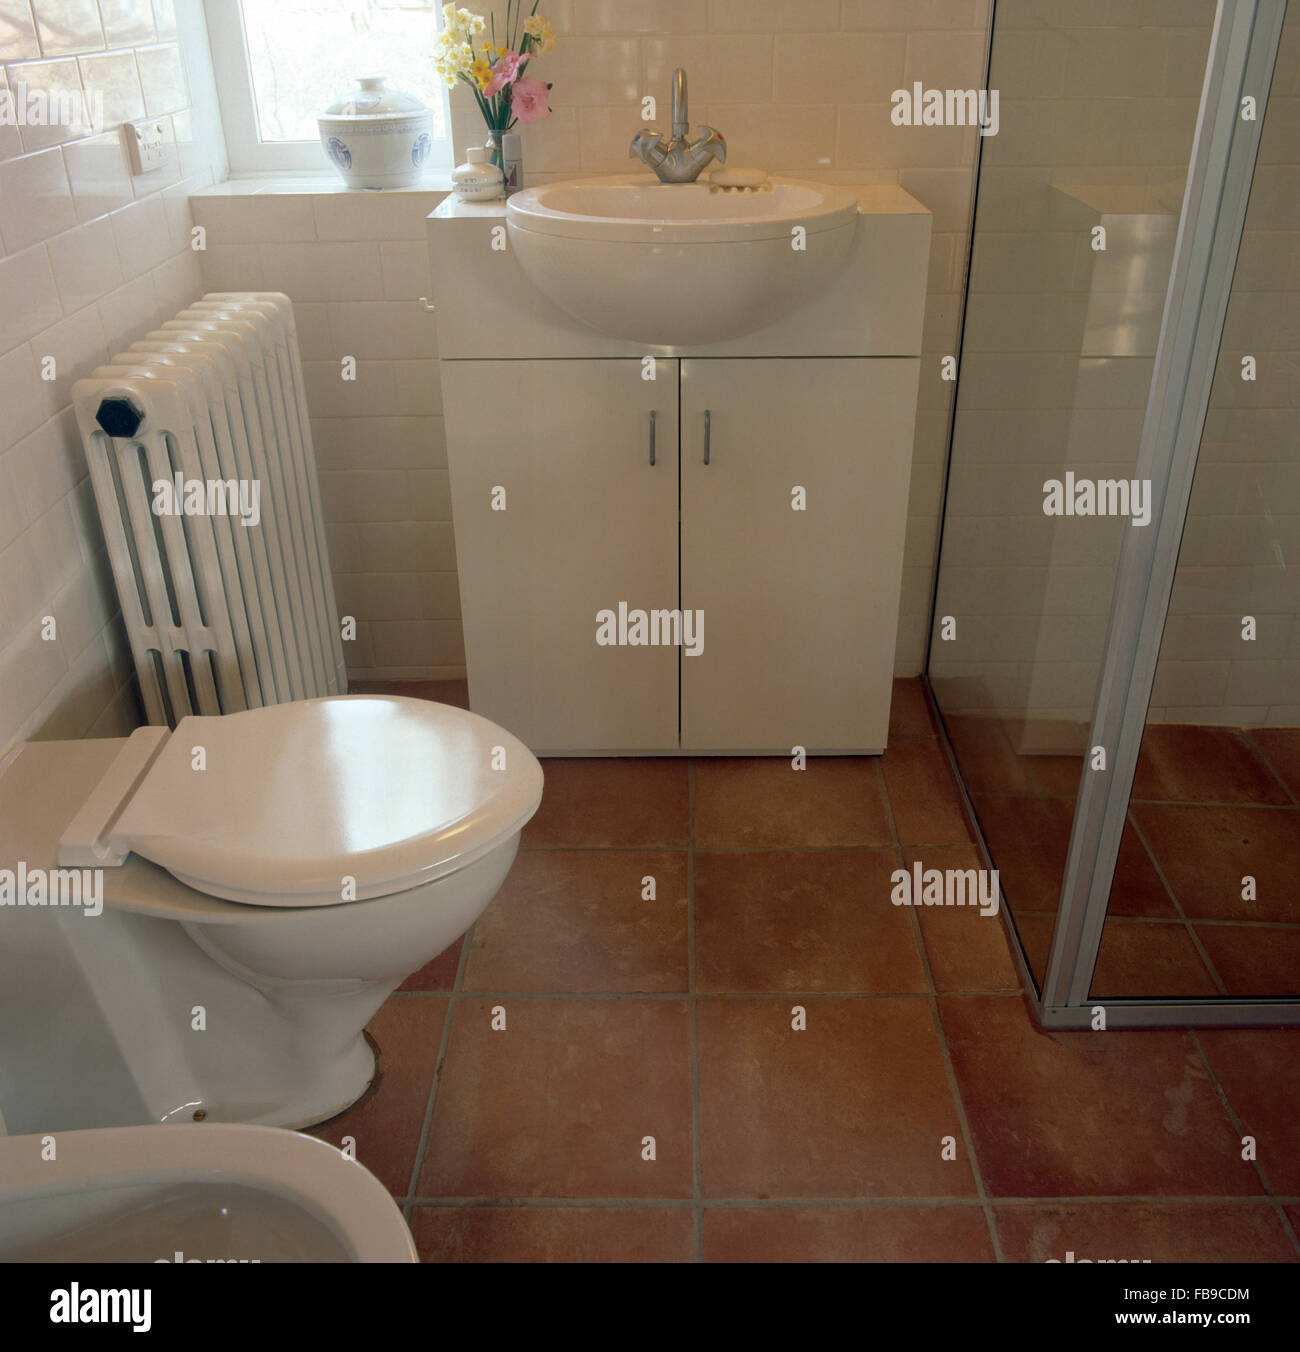 Showers Toilet Stock Photos & Showers Toilet Stock Images - Alamy